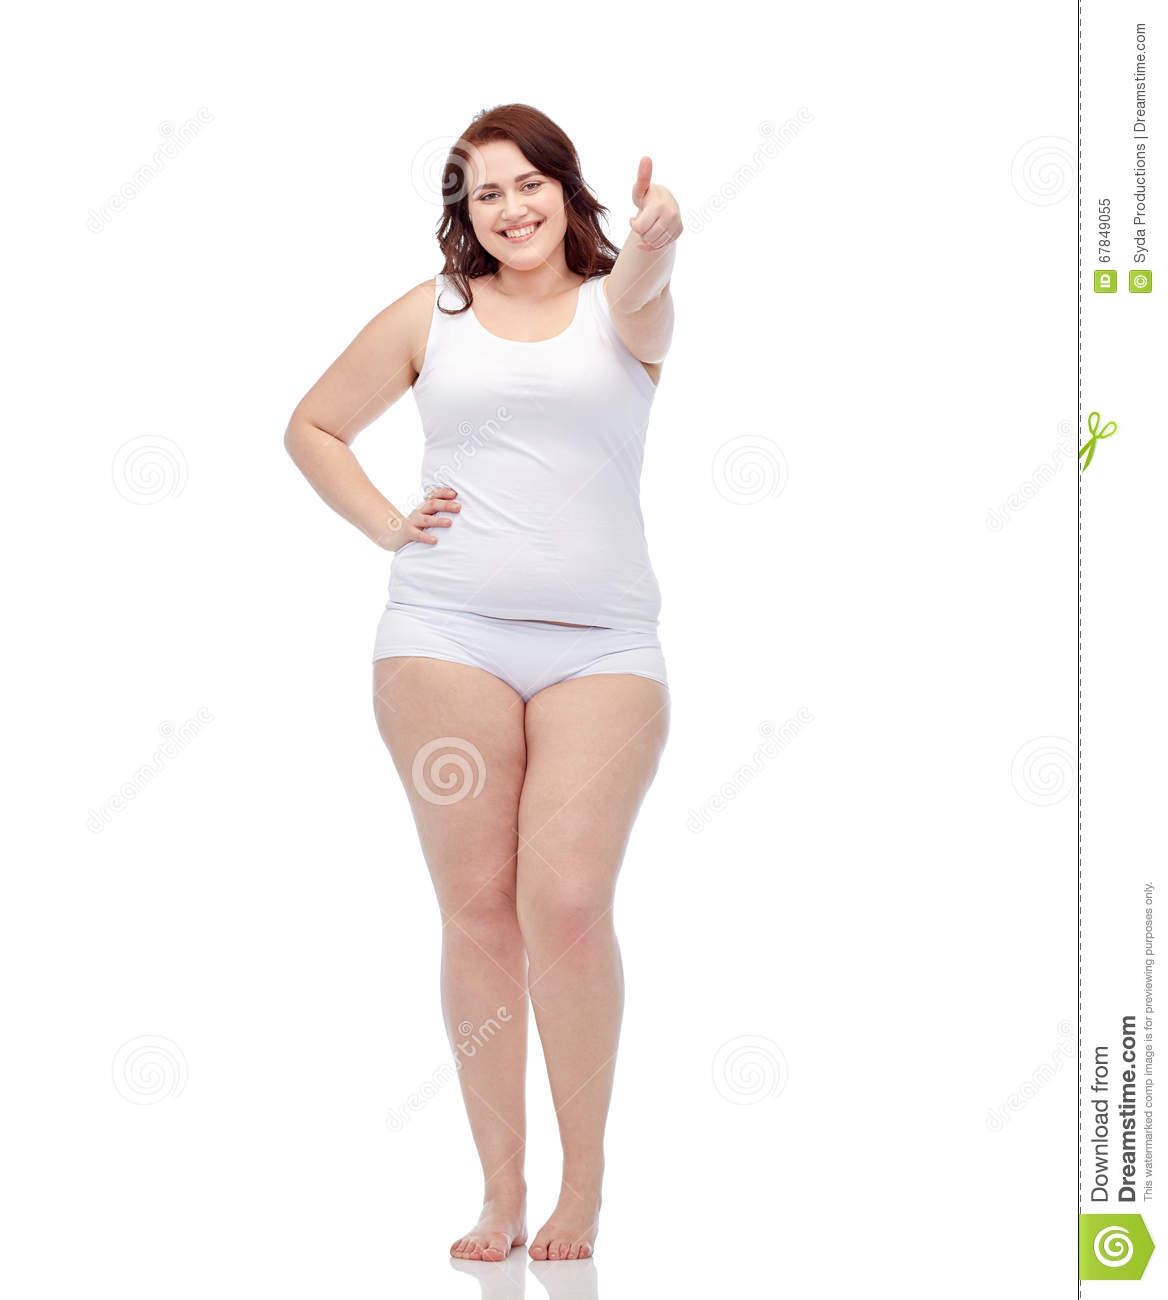 Plus Size Woman In Underwear Showing Thumbs Up Stock Photo - Image ...